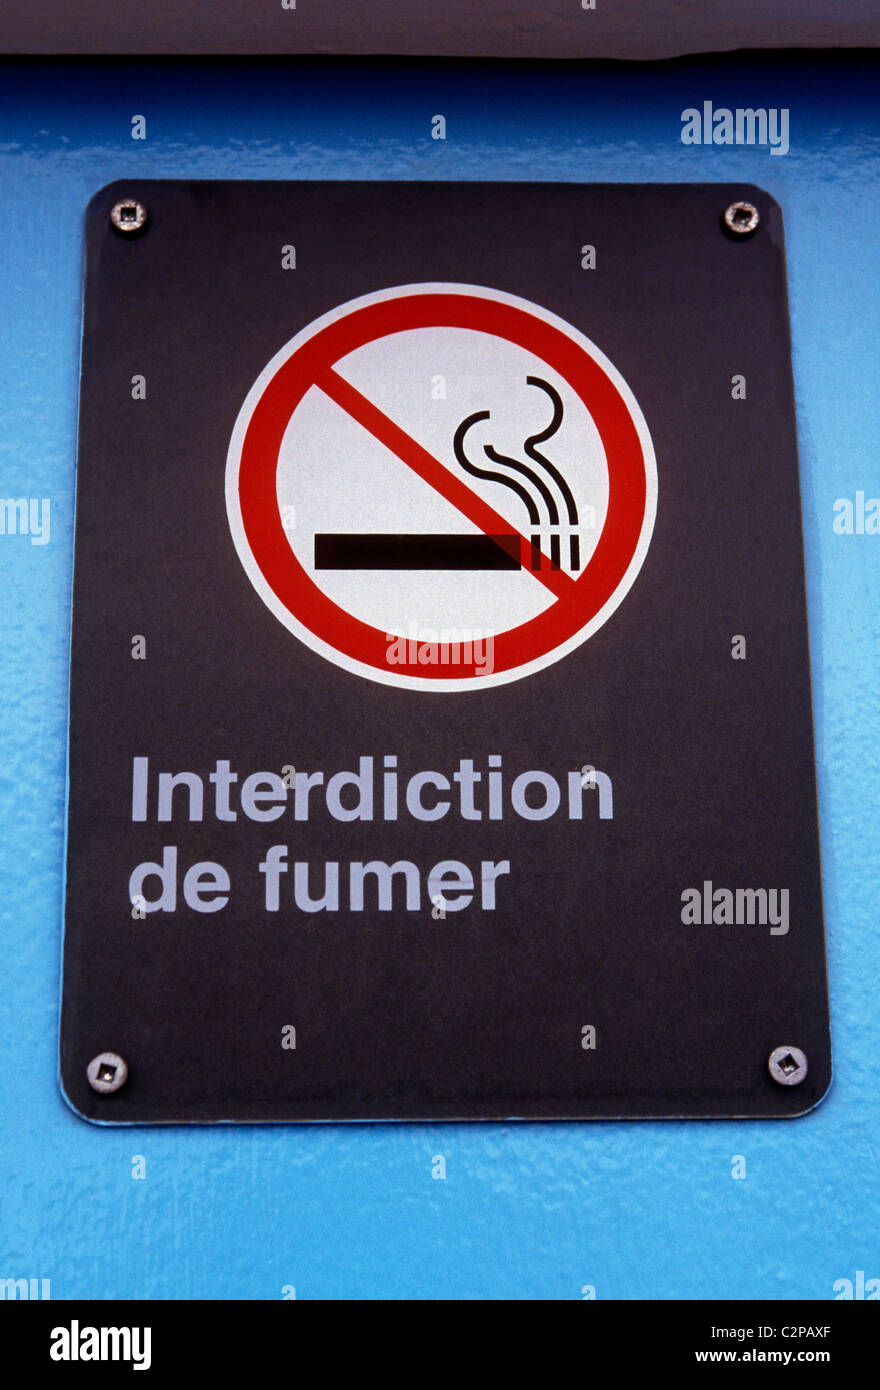 Fumer Stock Photos Fumer Stock Images Alamy